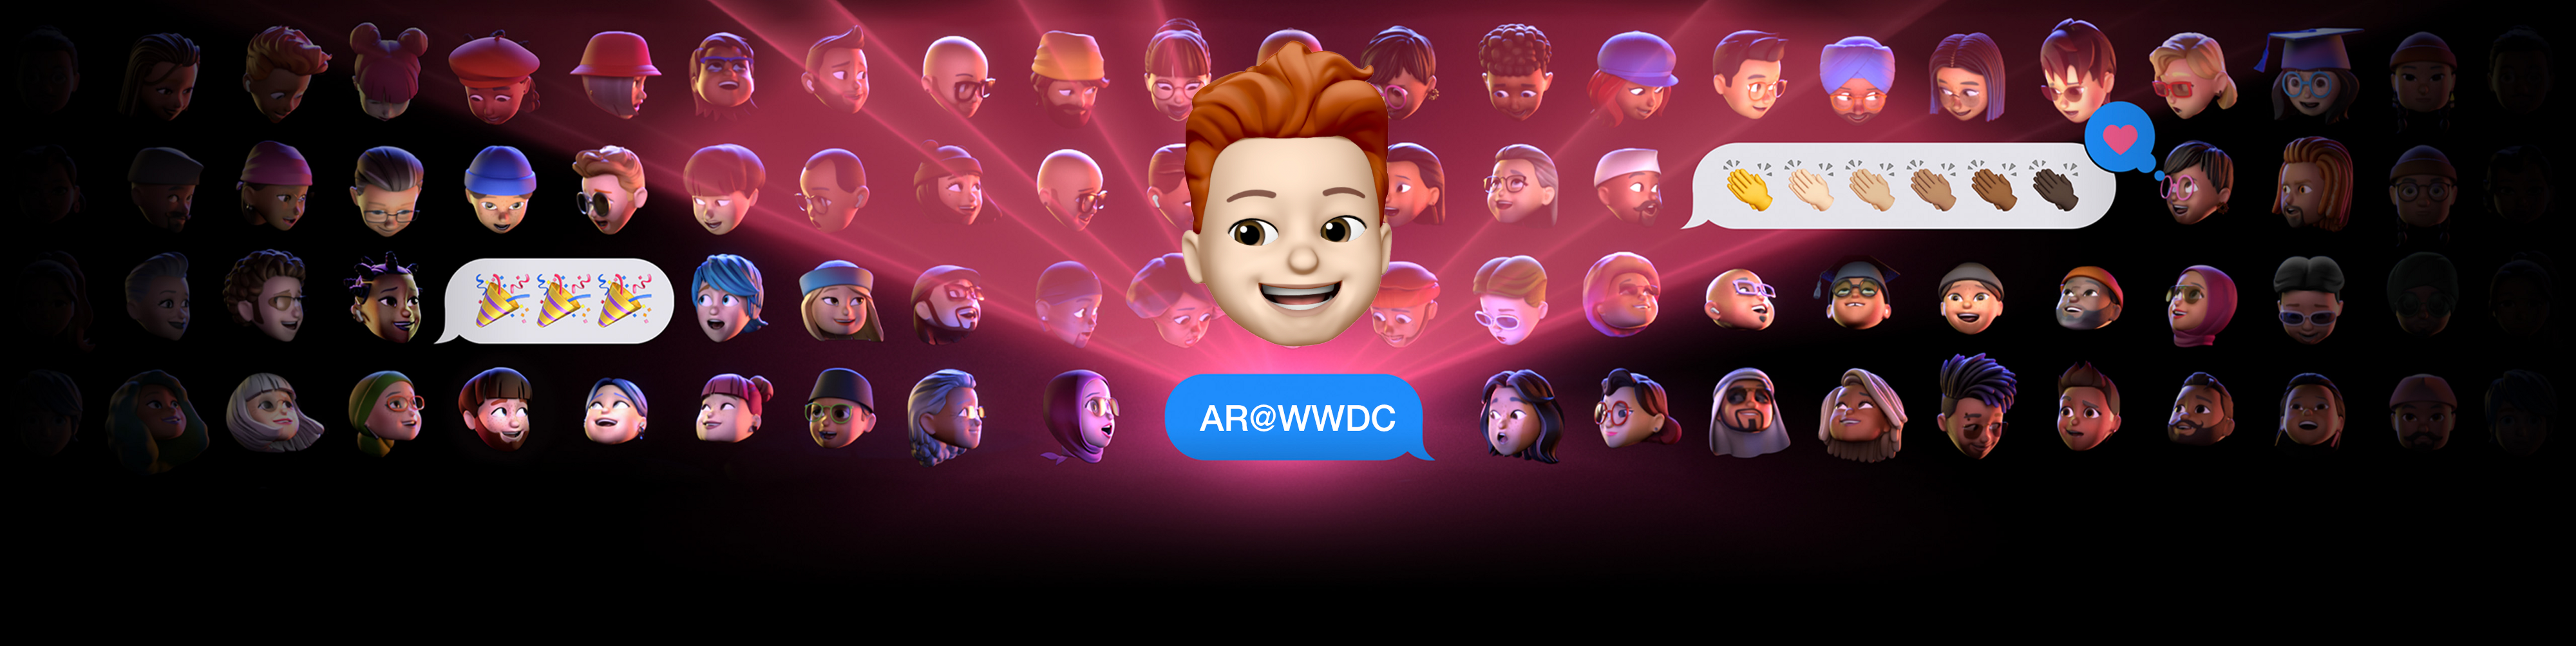 My memoji sits on top of the WWDC 2021 banner with an iMessage bubble reading AR@WWDC.